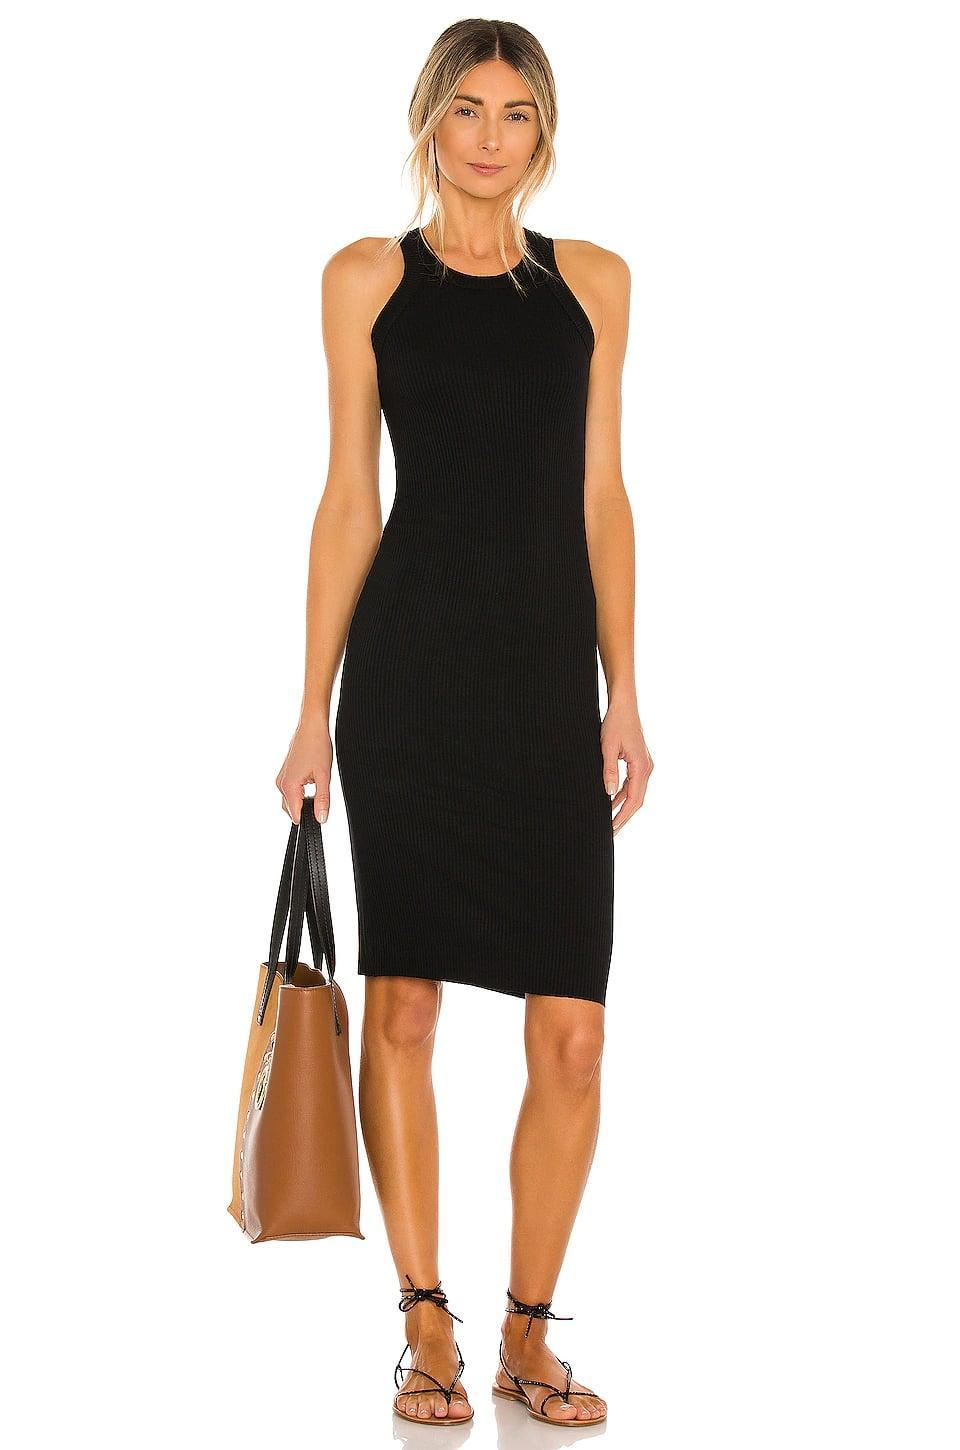 <p>The <span>WSLY Rivington Dress</span> ($98) is so soft and comfortable. Plus, it looks great on and feels like you made a real effort.</p>